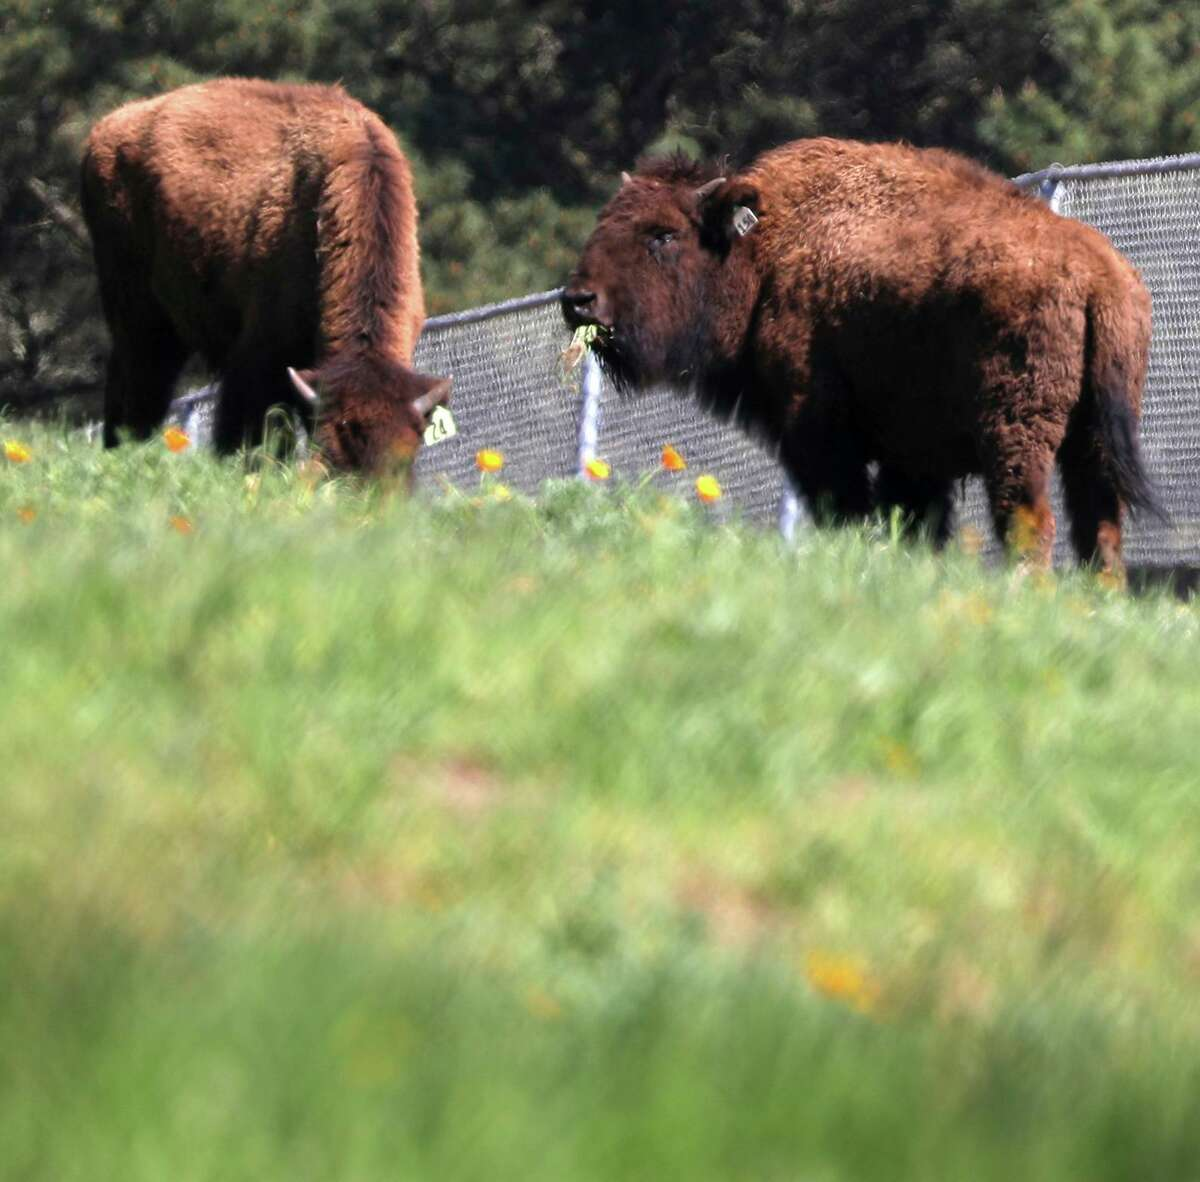 New additions to Golden Gate Park's bison herd chomp on the bounty of their new San Francisco residence.